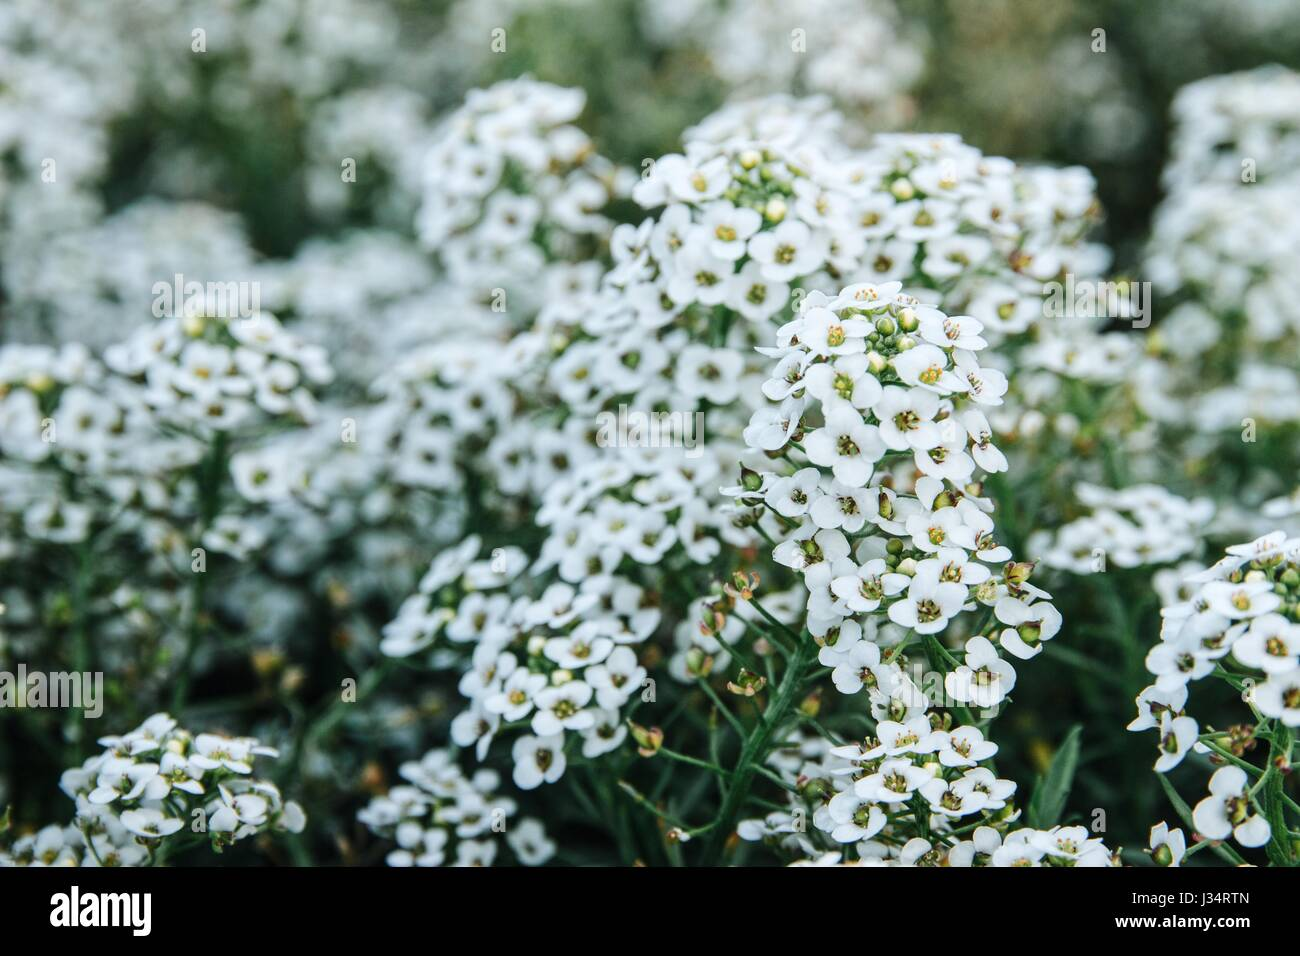 Bunch of tiny white flowers in clusters stock photo 139633445 alamy bunch of tiny white flowers in clusters mightylinksfo